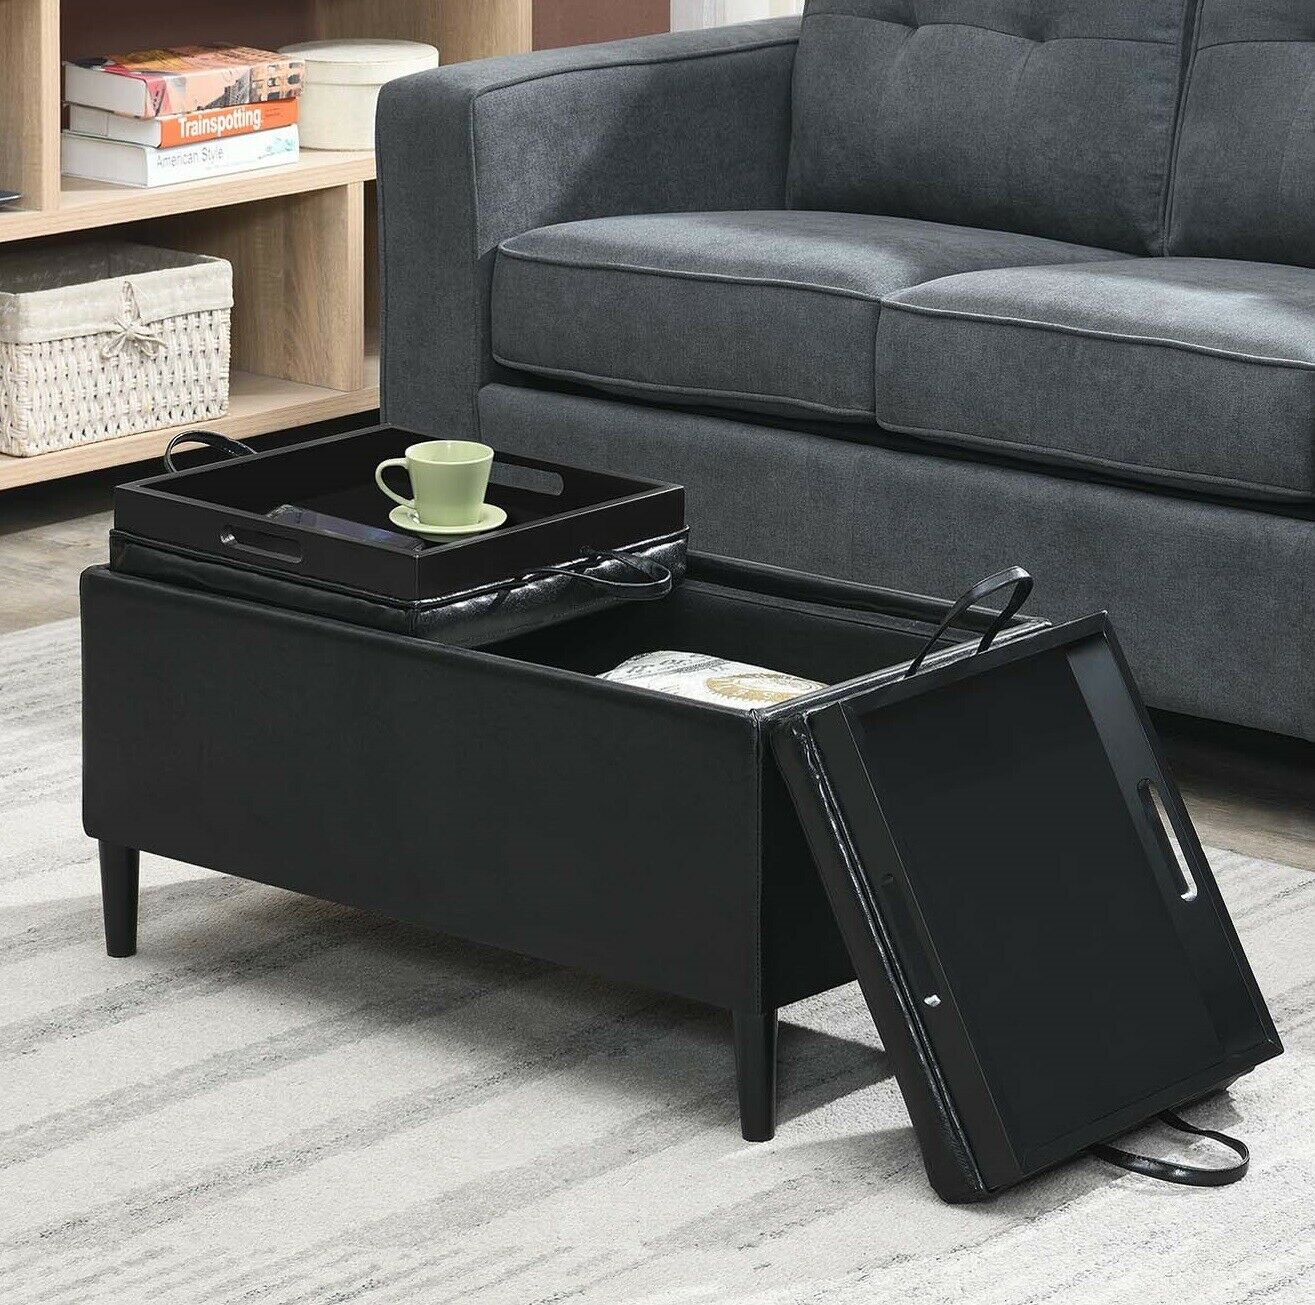 details about rectangular storage ottoman w 2 trays coffee table bench seat upholstered black